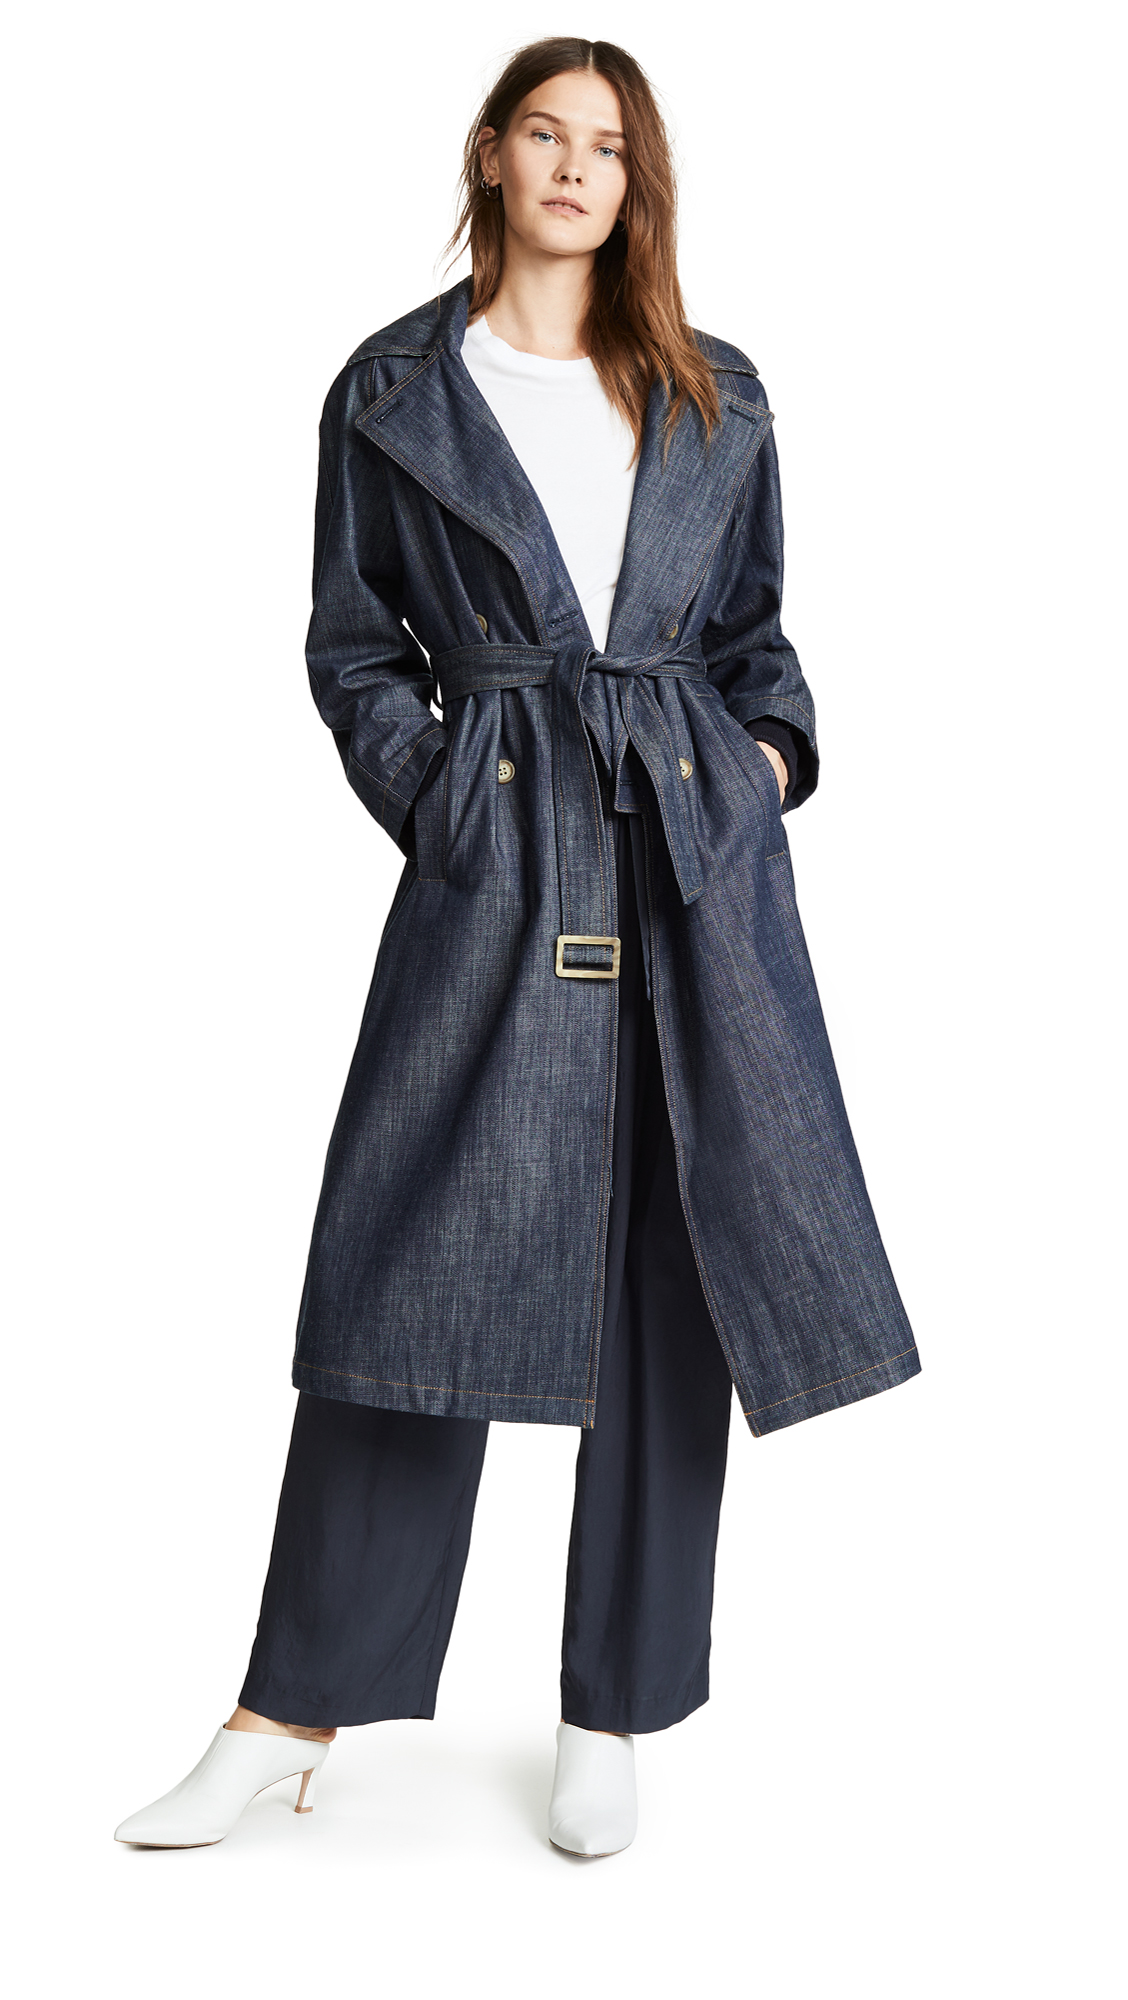 Tibi Trench Coat with Removable Collar - Marine Denim